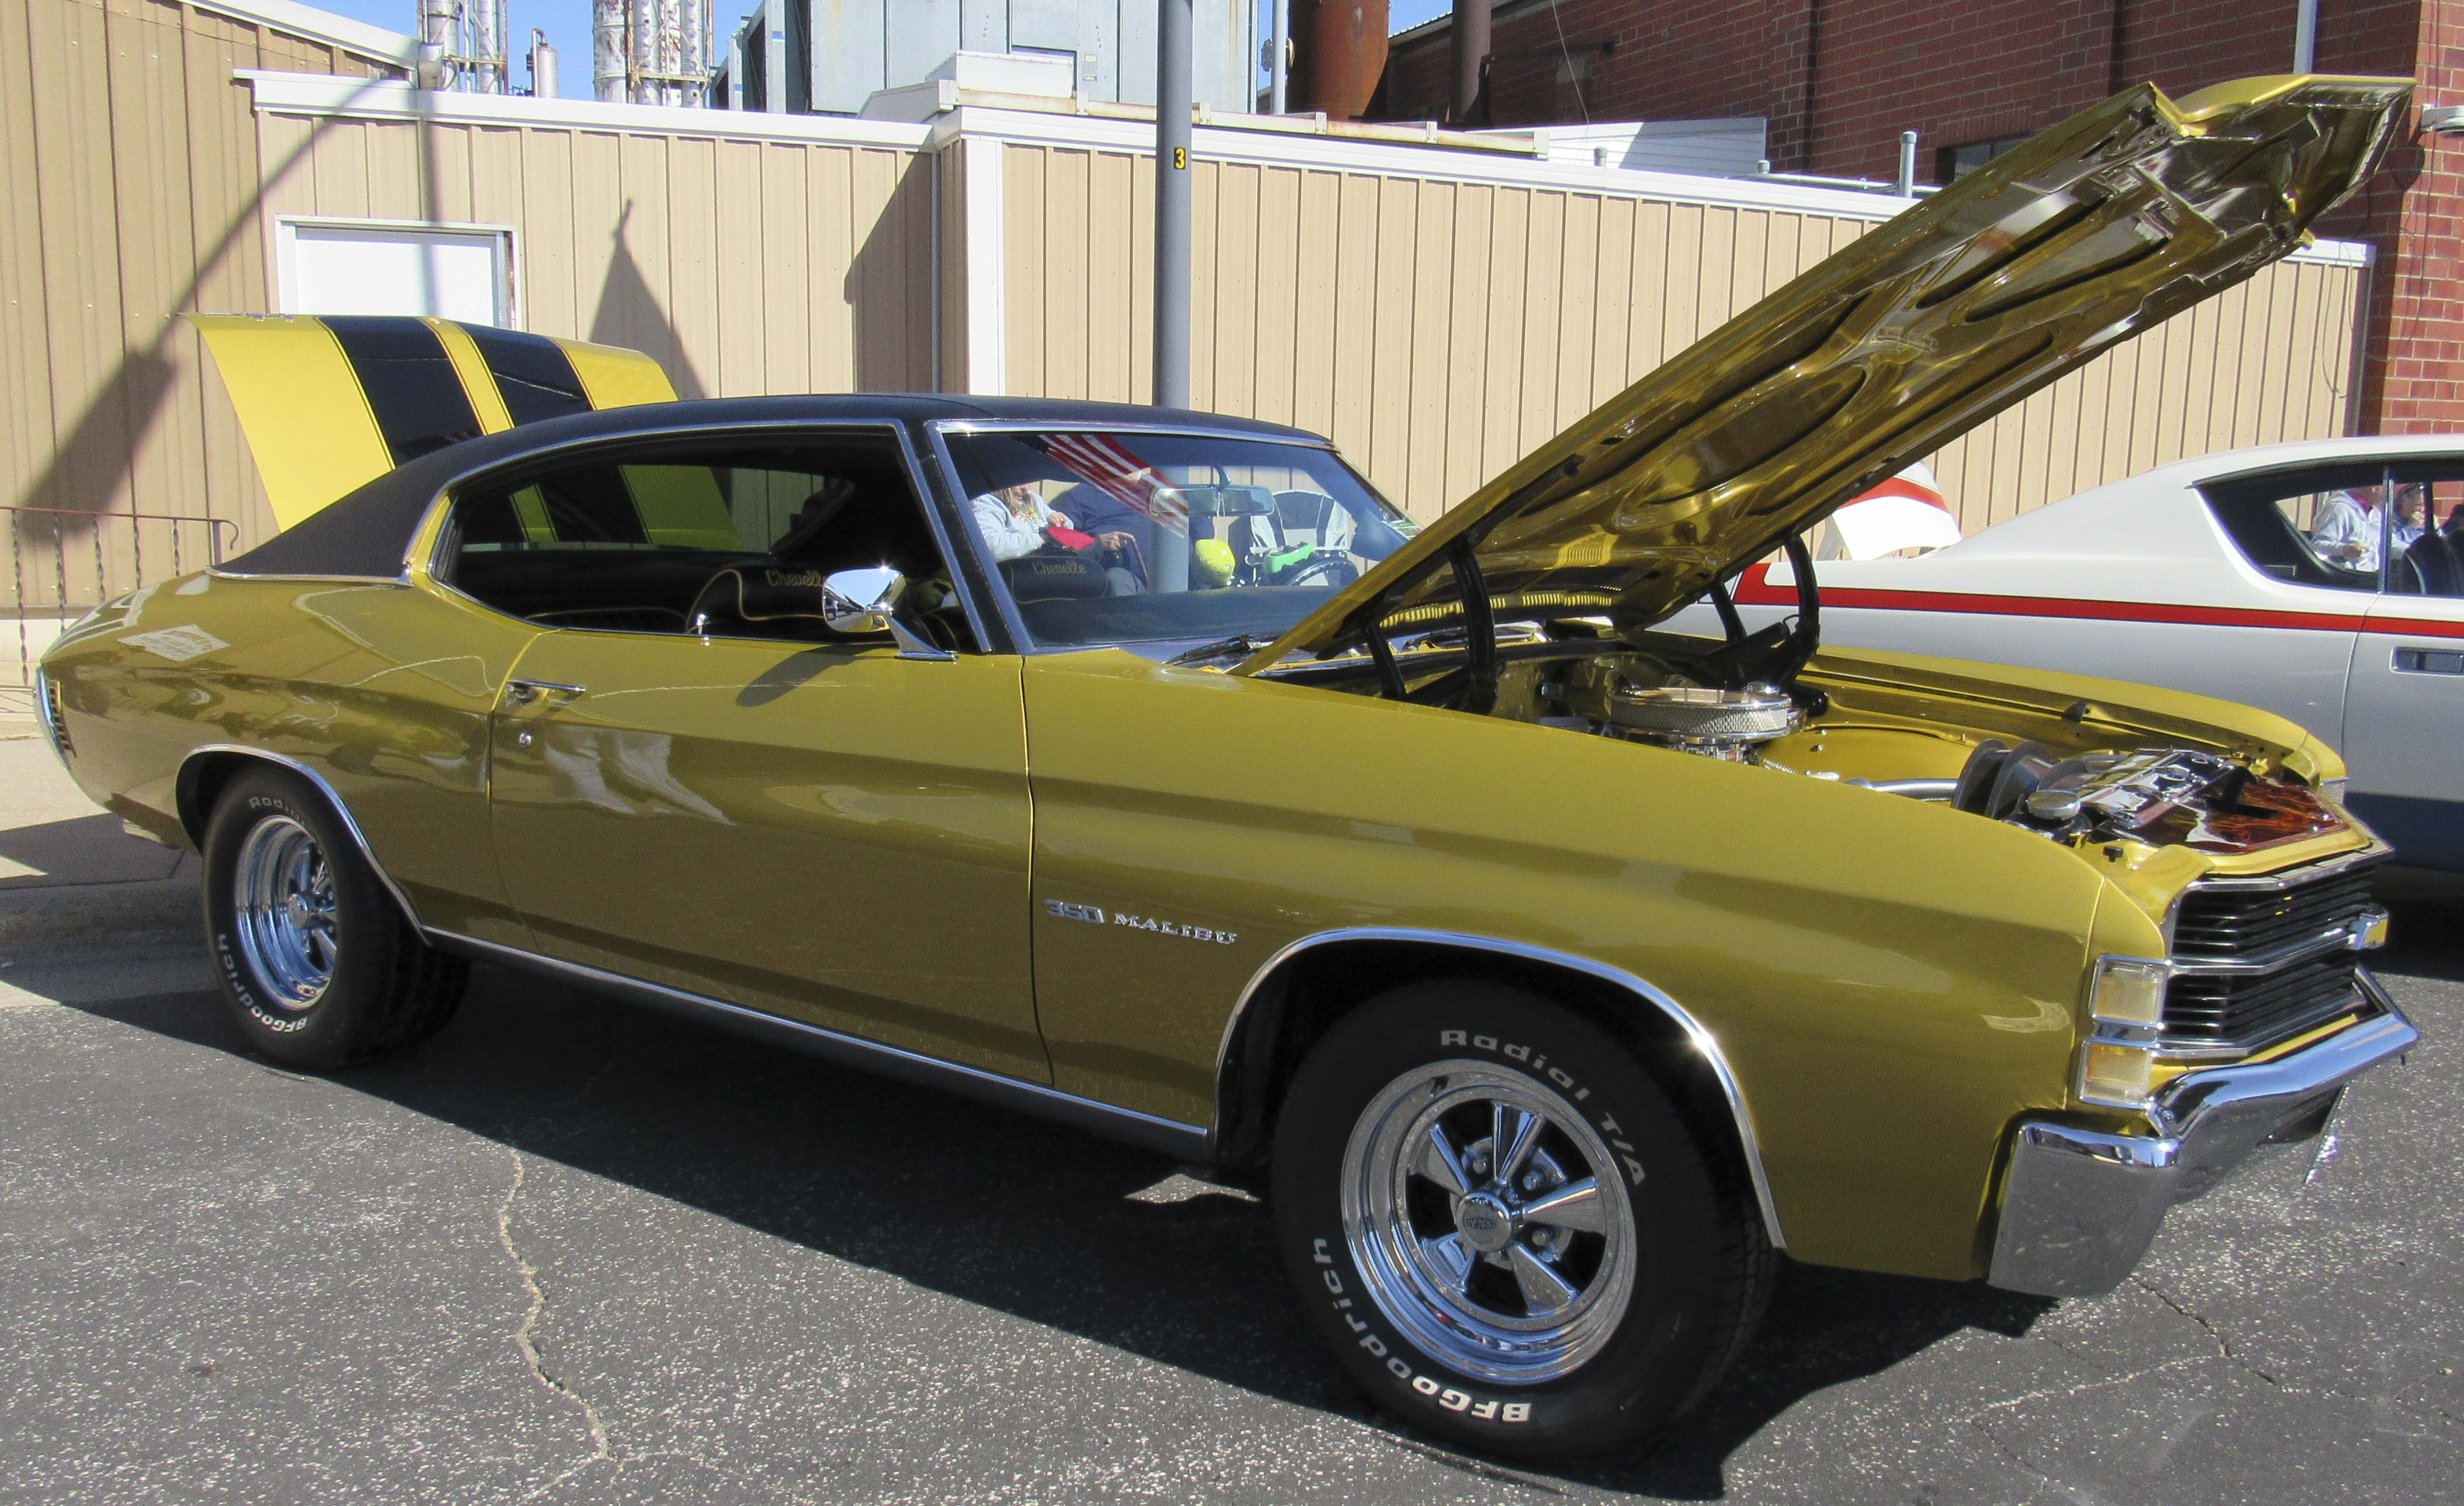 The car show included a couple of Iowa Hawkeye fan cars like this 1971 Chevy Chevelle owned by Tim and Judy Knudsen of Cedar Falls.